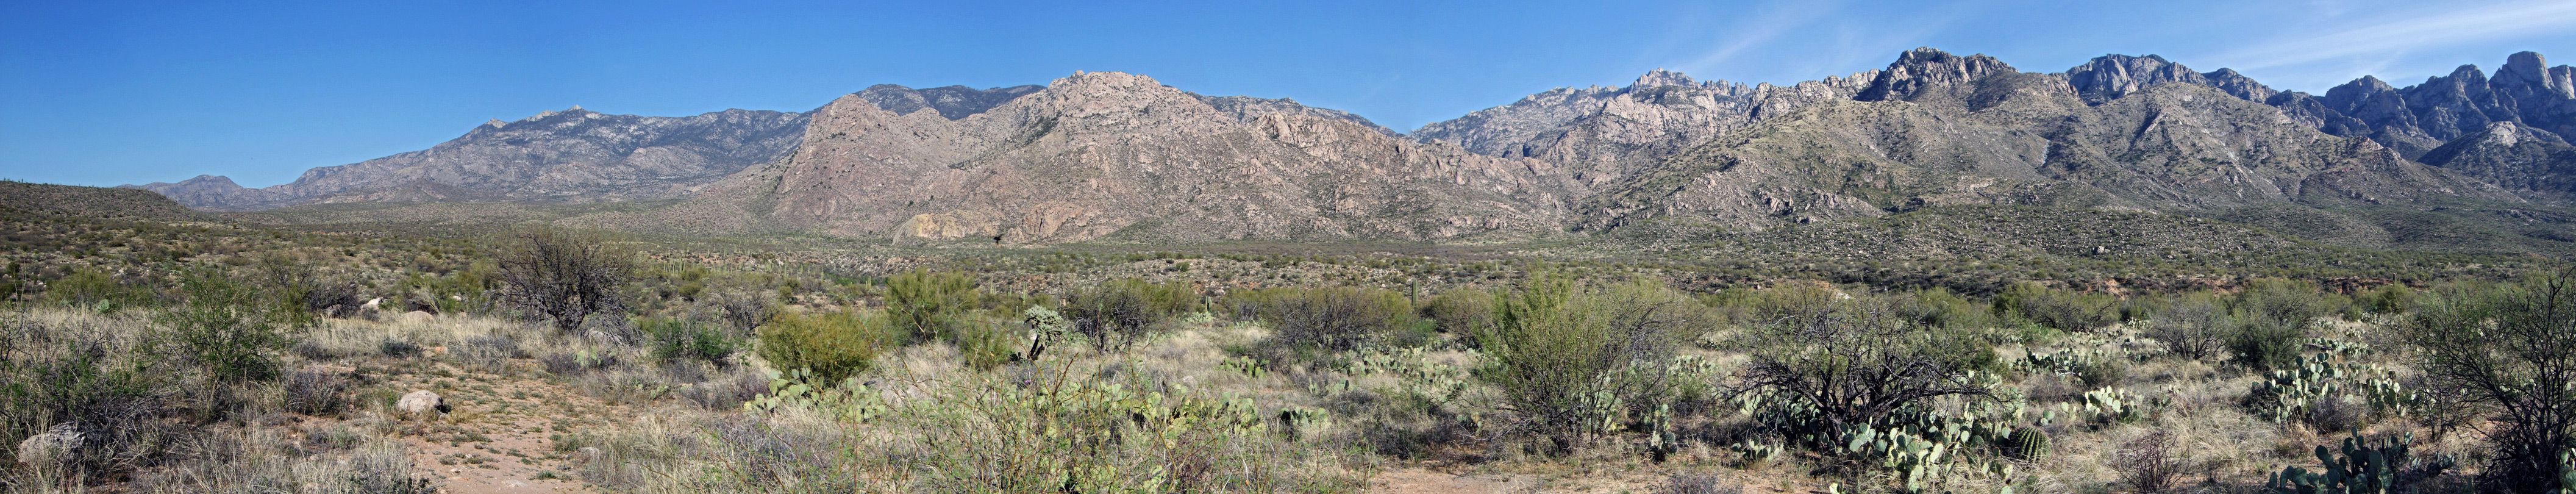 Panorama of the Santa Catalina Mountains